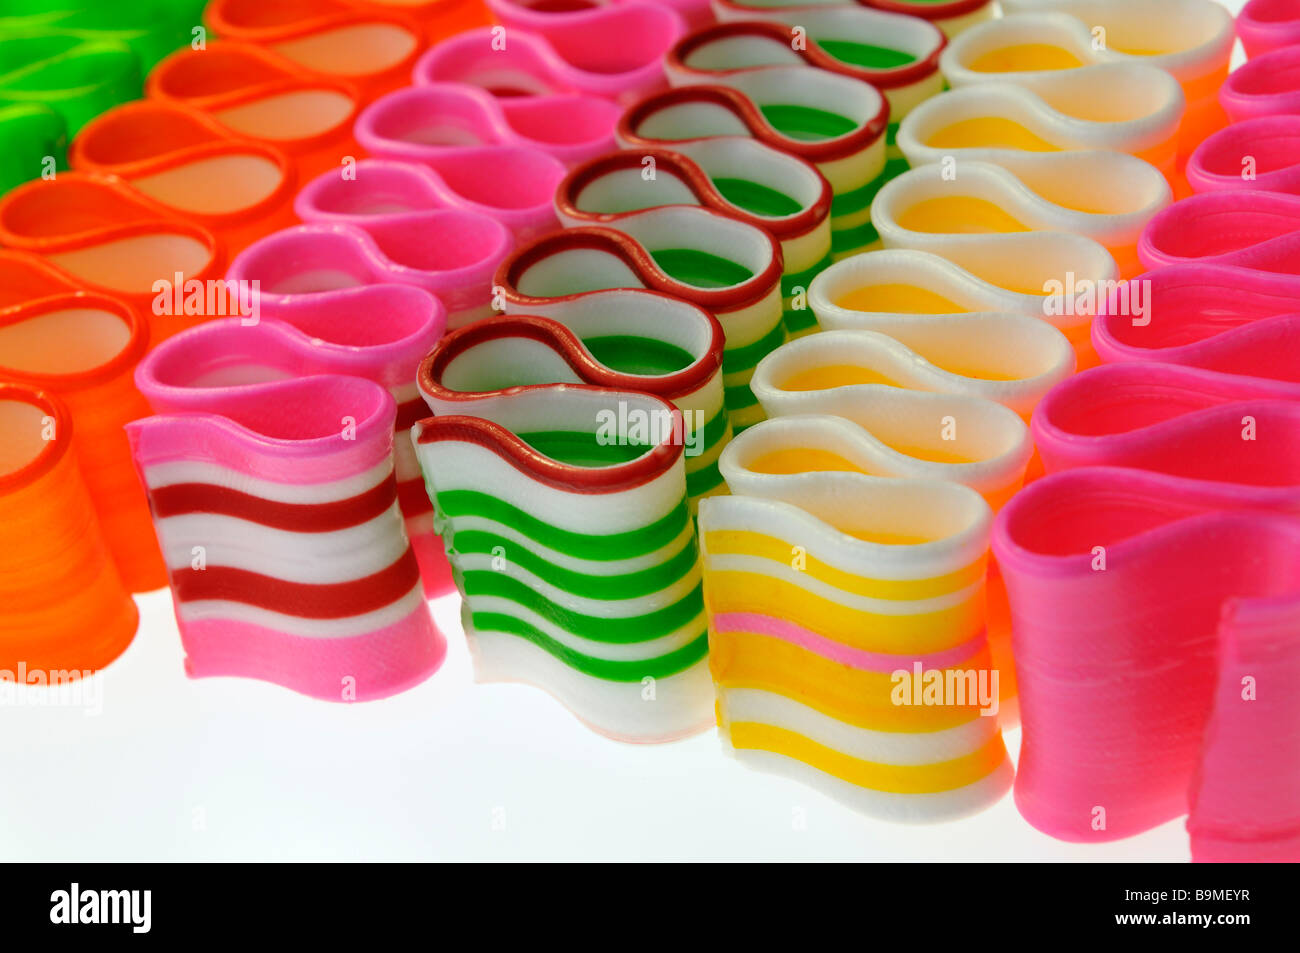 Close up of diagonal strips of colorful twisted thin ribbon candy - Stock Image